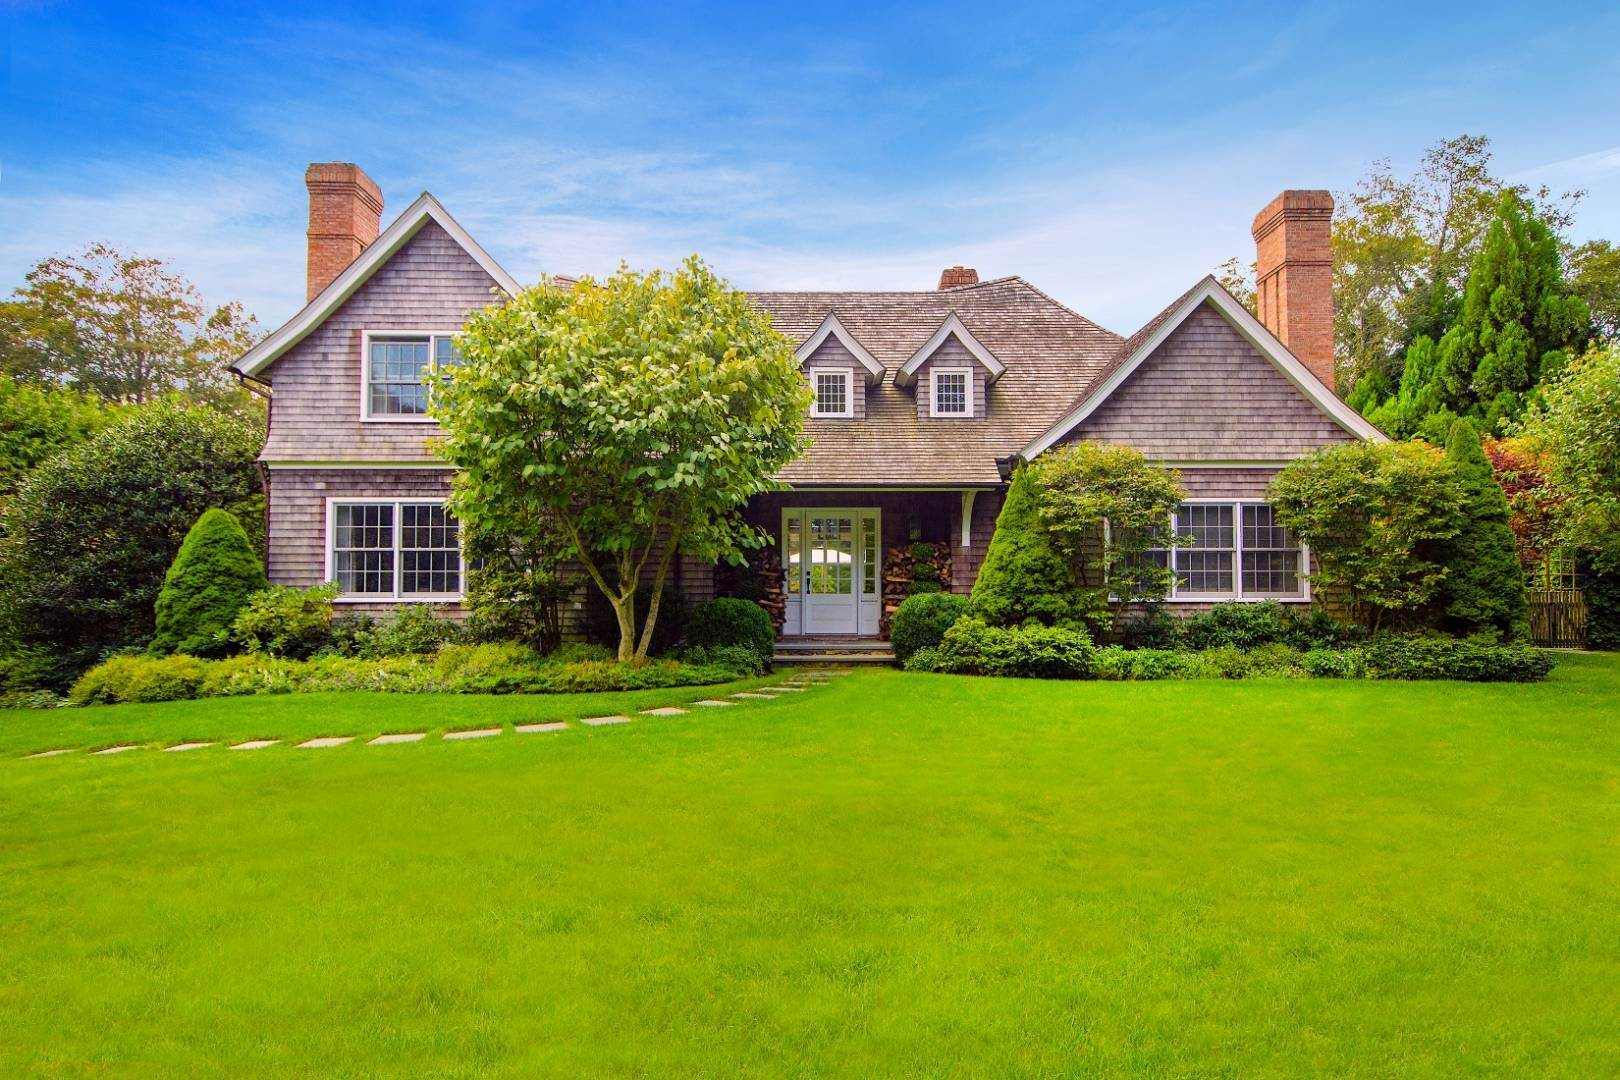 Single Family Home for Sale at Prime Village South Location 67 Huntting Lane, East Hampton, NY 11937